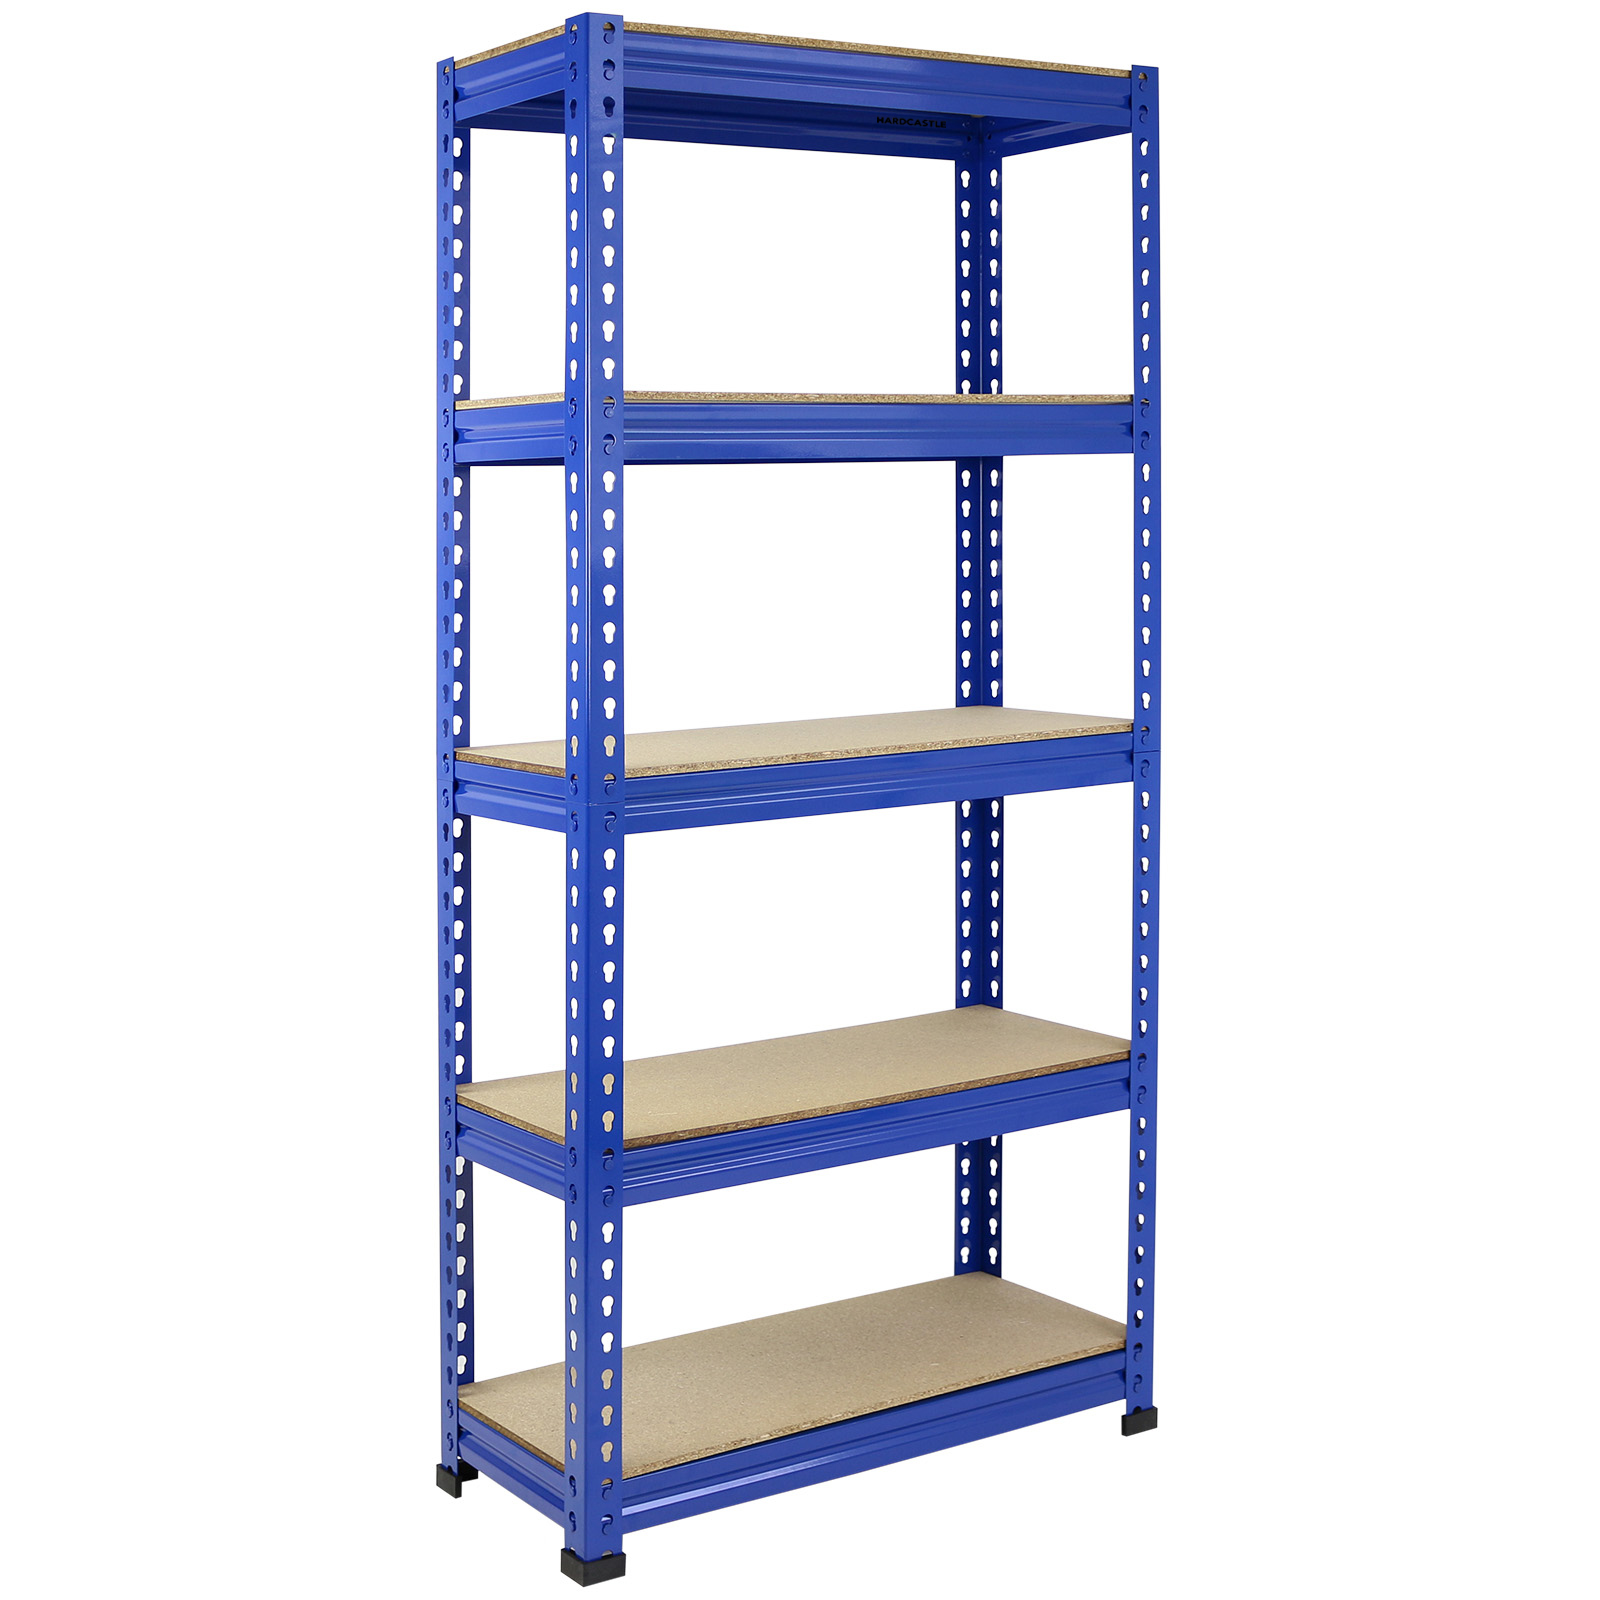 Ranger Son Garage Ikea Rangement De Garage Affordable Etagere Garage Pas Cher